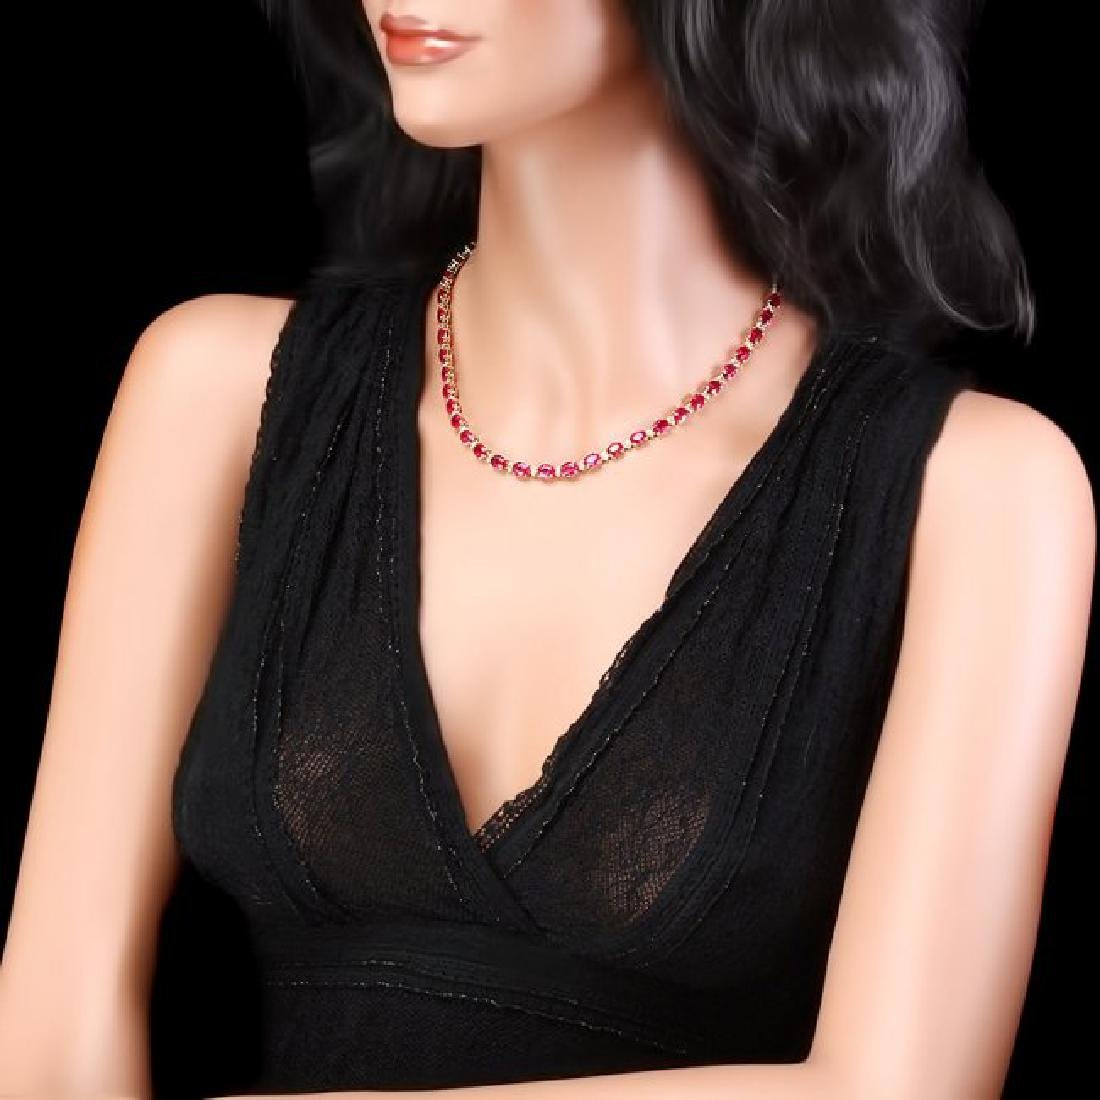 14k Gold 45.00ct Ruby 1.75ct Diamond Necklace - 4